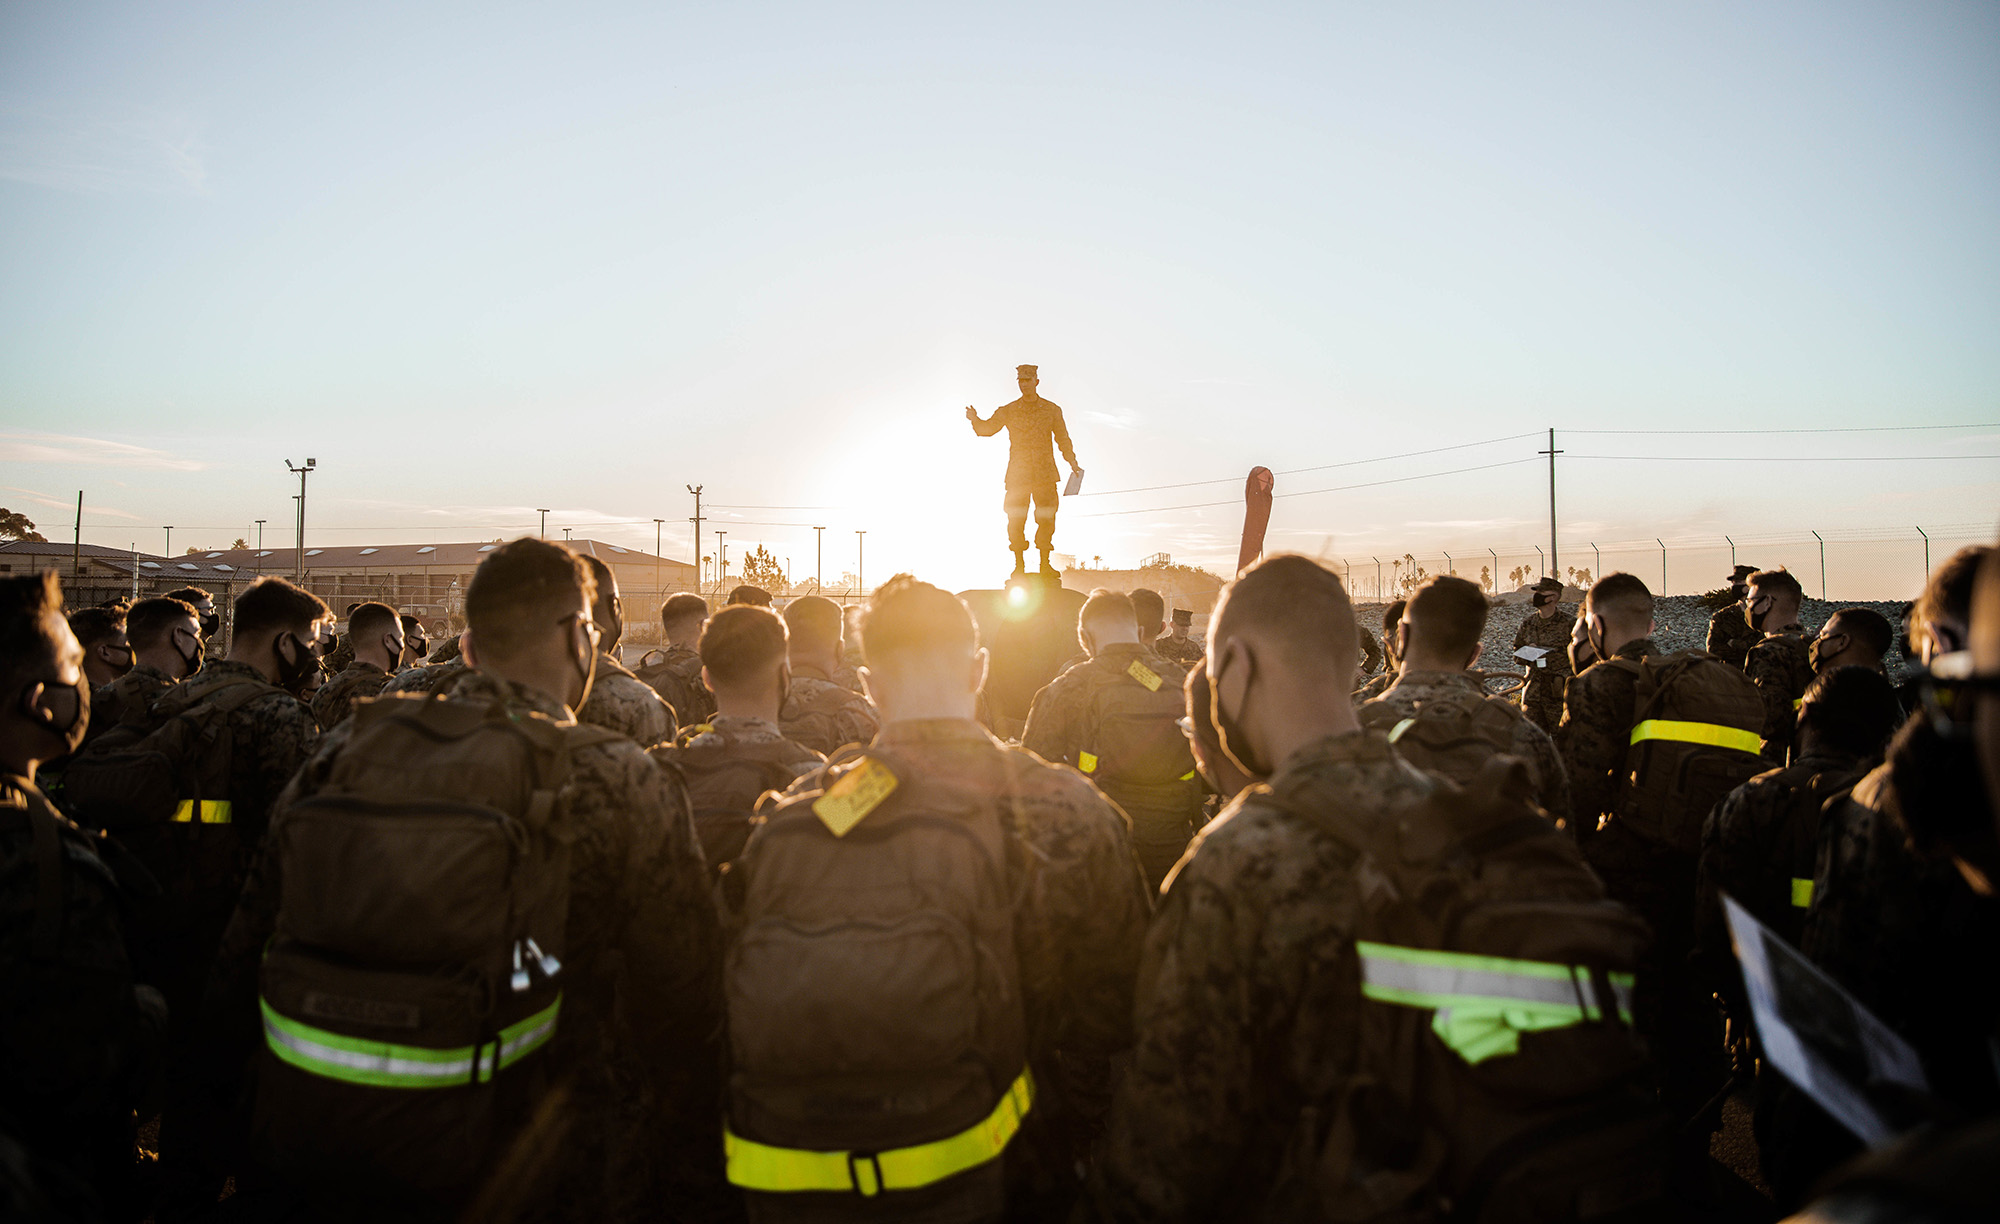 Marines Corps 1st Lt. John Merten, the executive officer of Co. C, 3rd Assault Amphibian Battalion, 1st Marine Division, briefs Marines on Jan. 15, 2021, prior to beginning the Amphibious Combat Endurance Test on Marine Corps Base Camp Pendleton, Calif. (Lance Cpl. Roxanna Ortiz/Marine Corps)